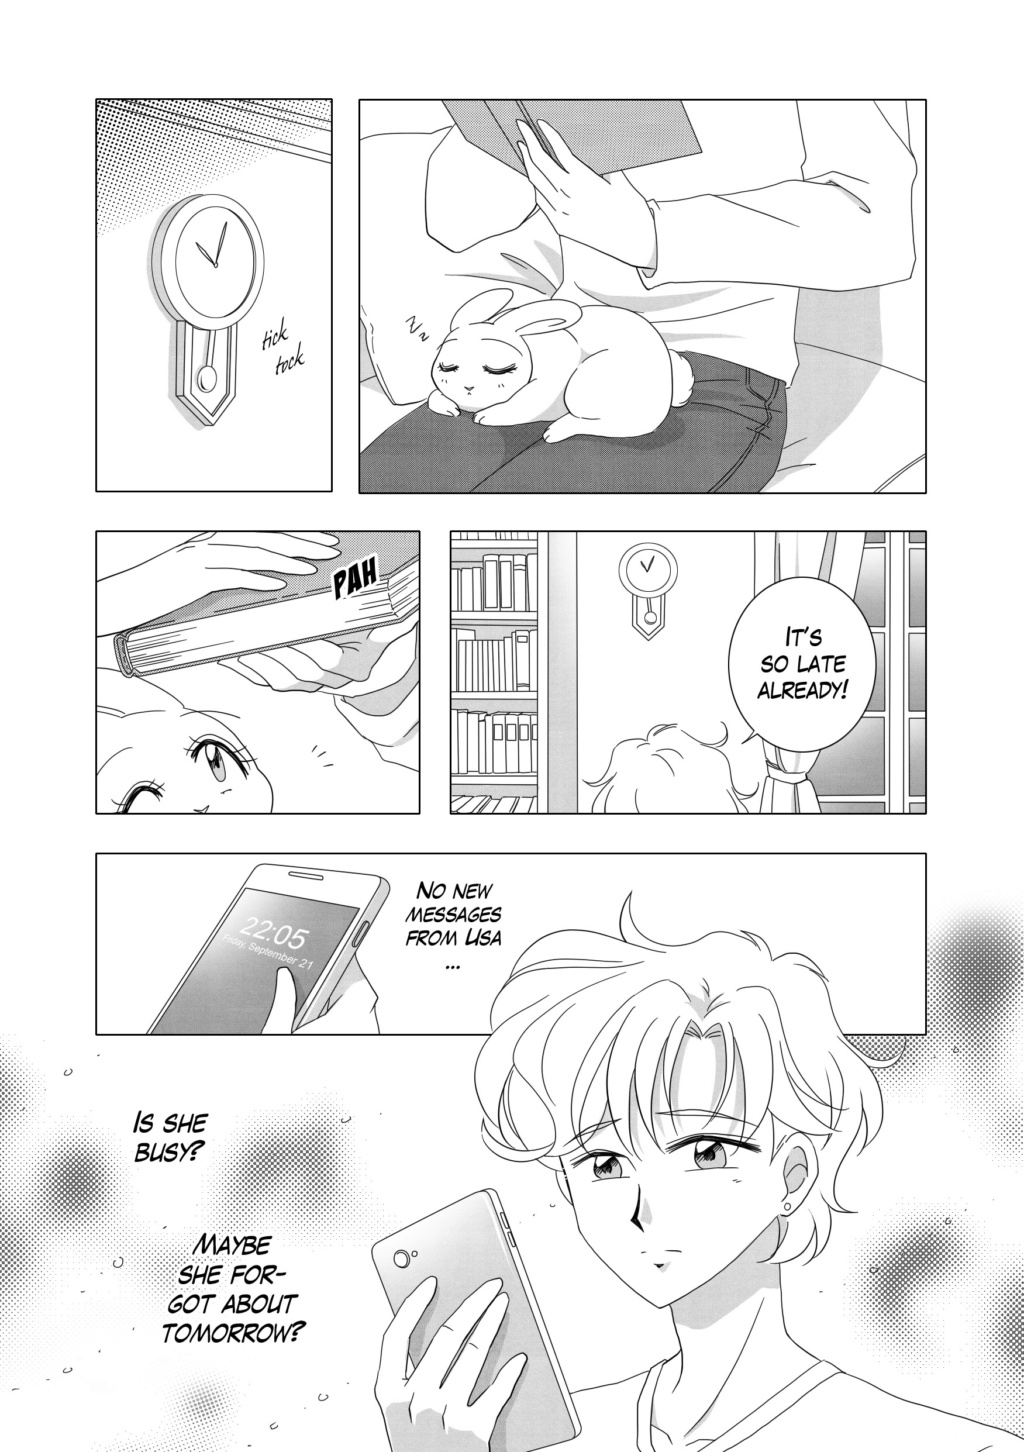 [F] My 30th century Chibi-Usa x Helios doujinshi project: UPDATED 11-25-18 - Page 19 Sbs_pg24